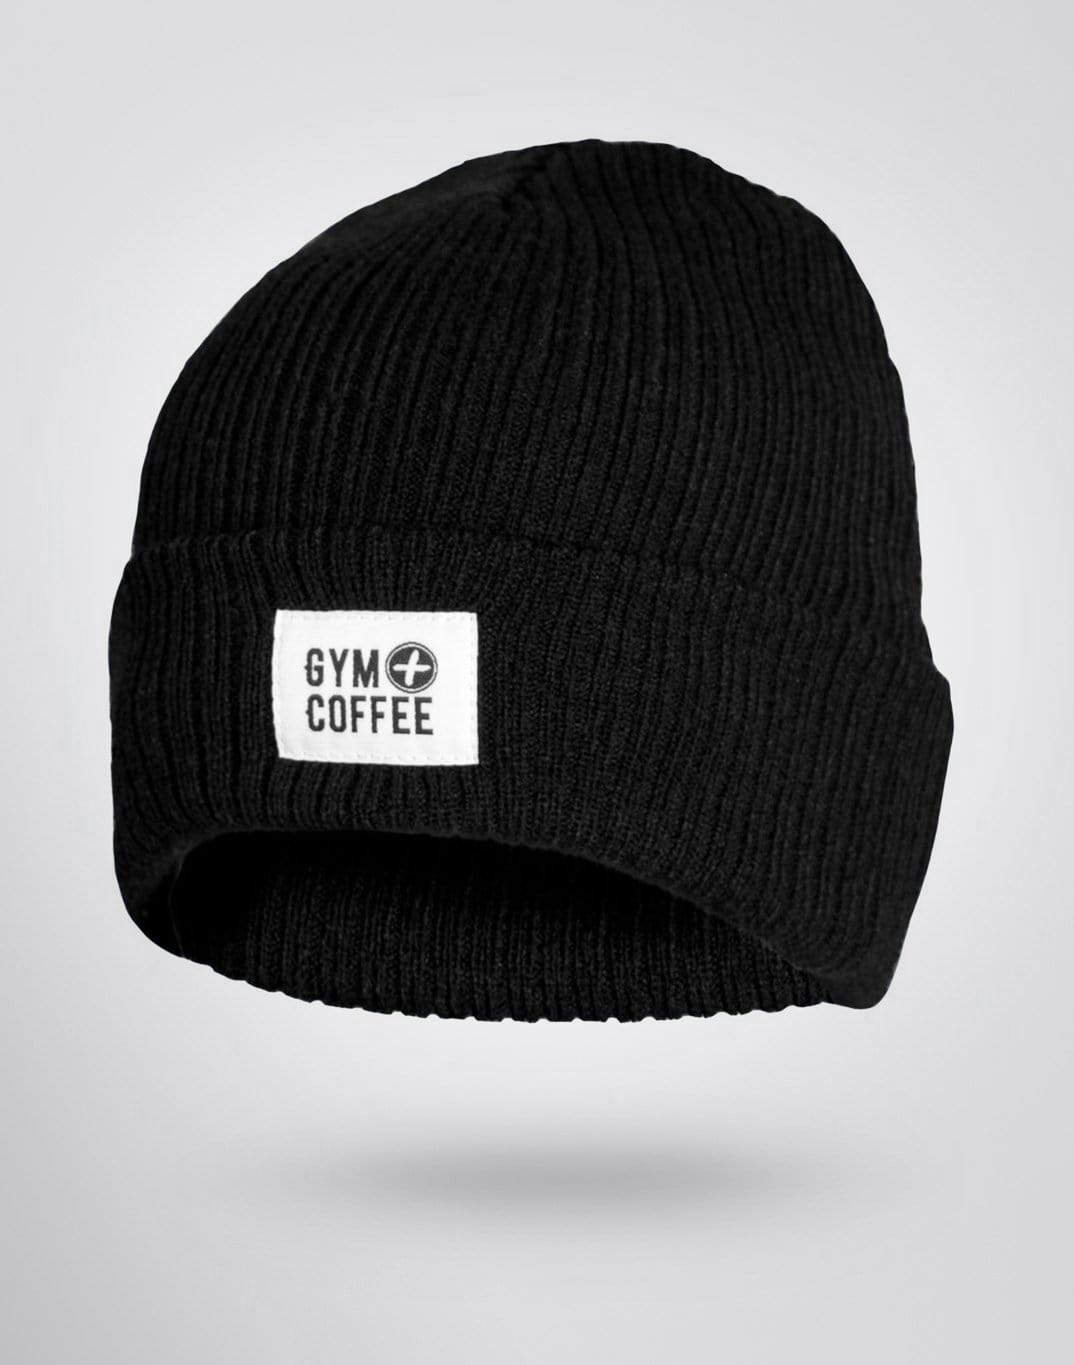 Gym Plus Coffee Beanie Jet Black Beanie Designed in Ireland